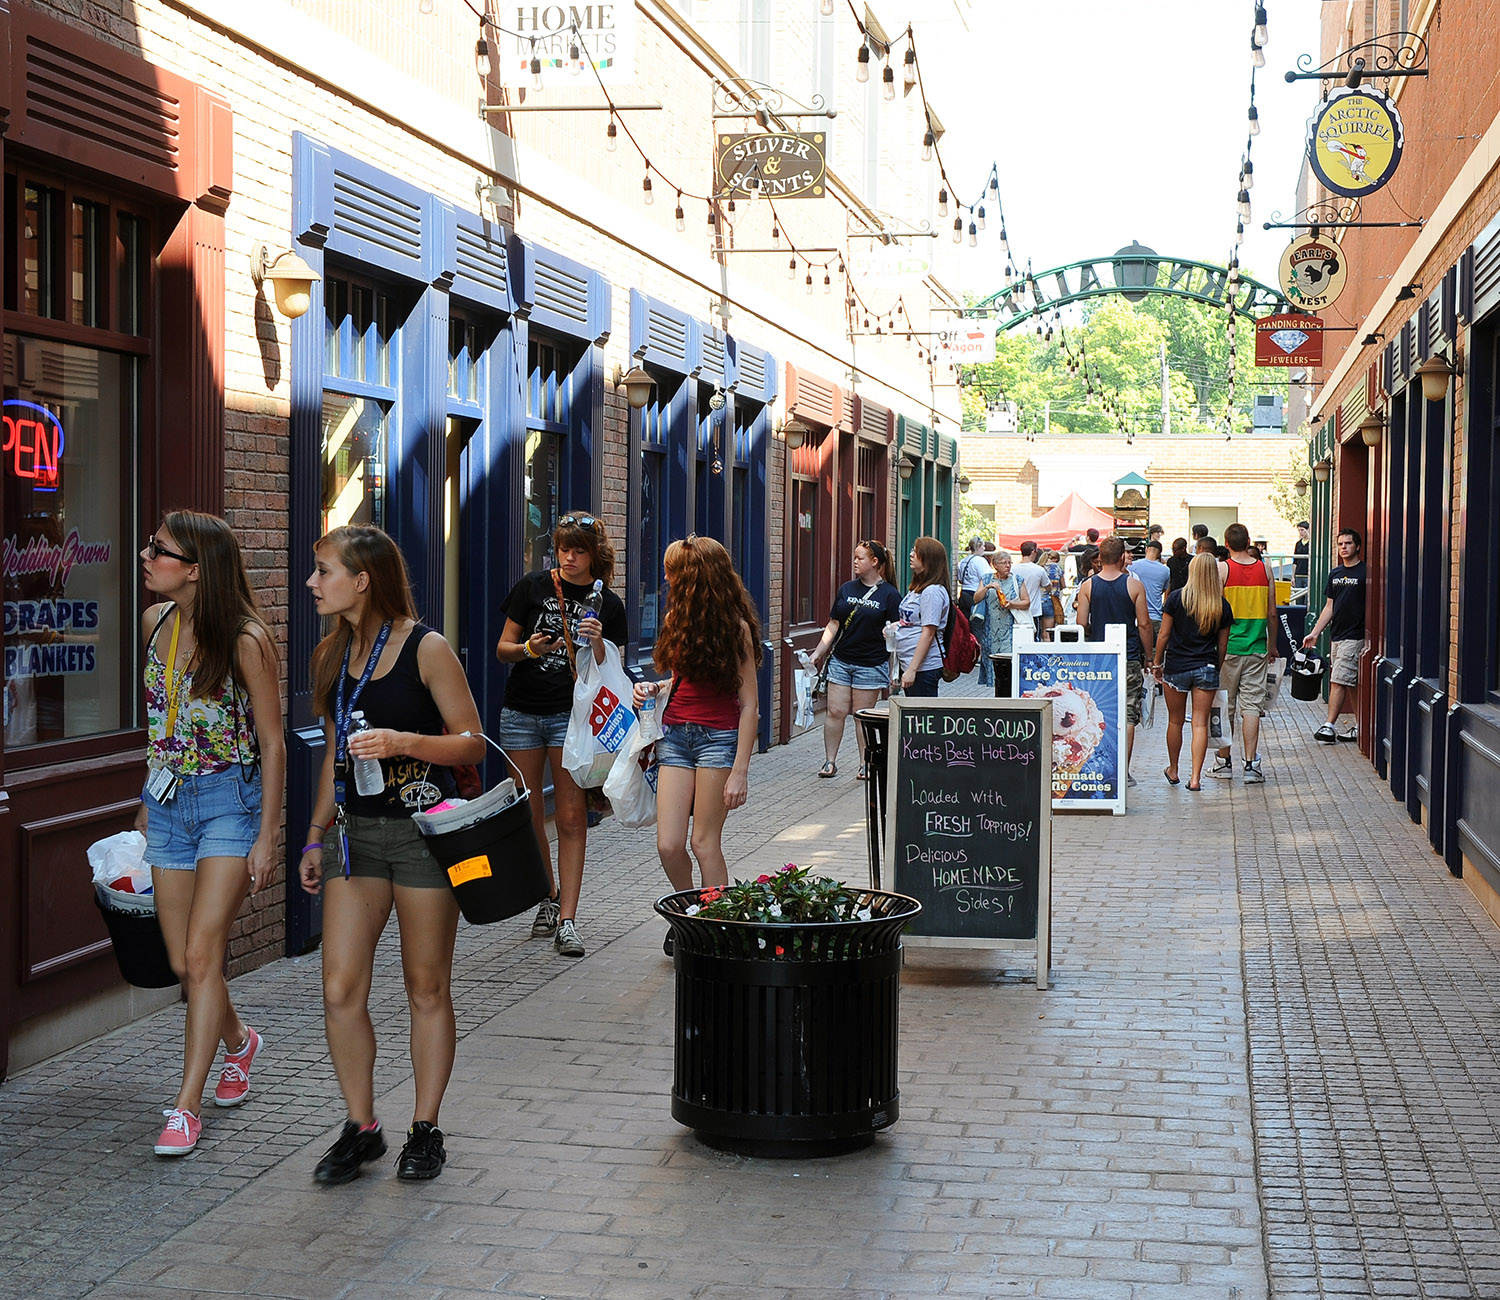 Acorn Alley has shops and restaurants, as well as the Kent State Hotel.